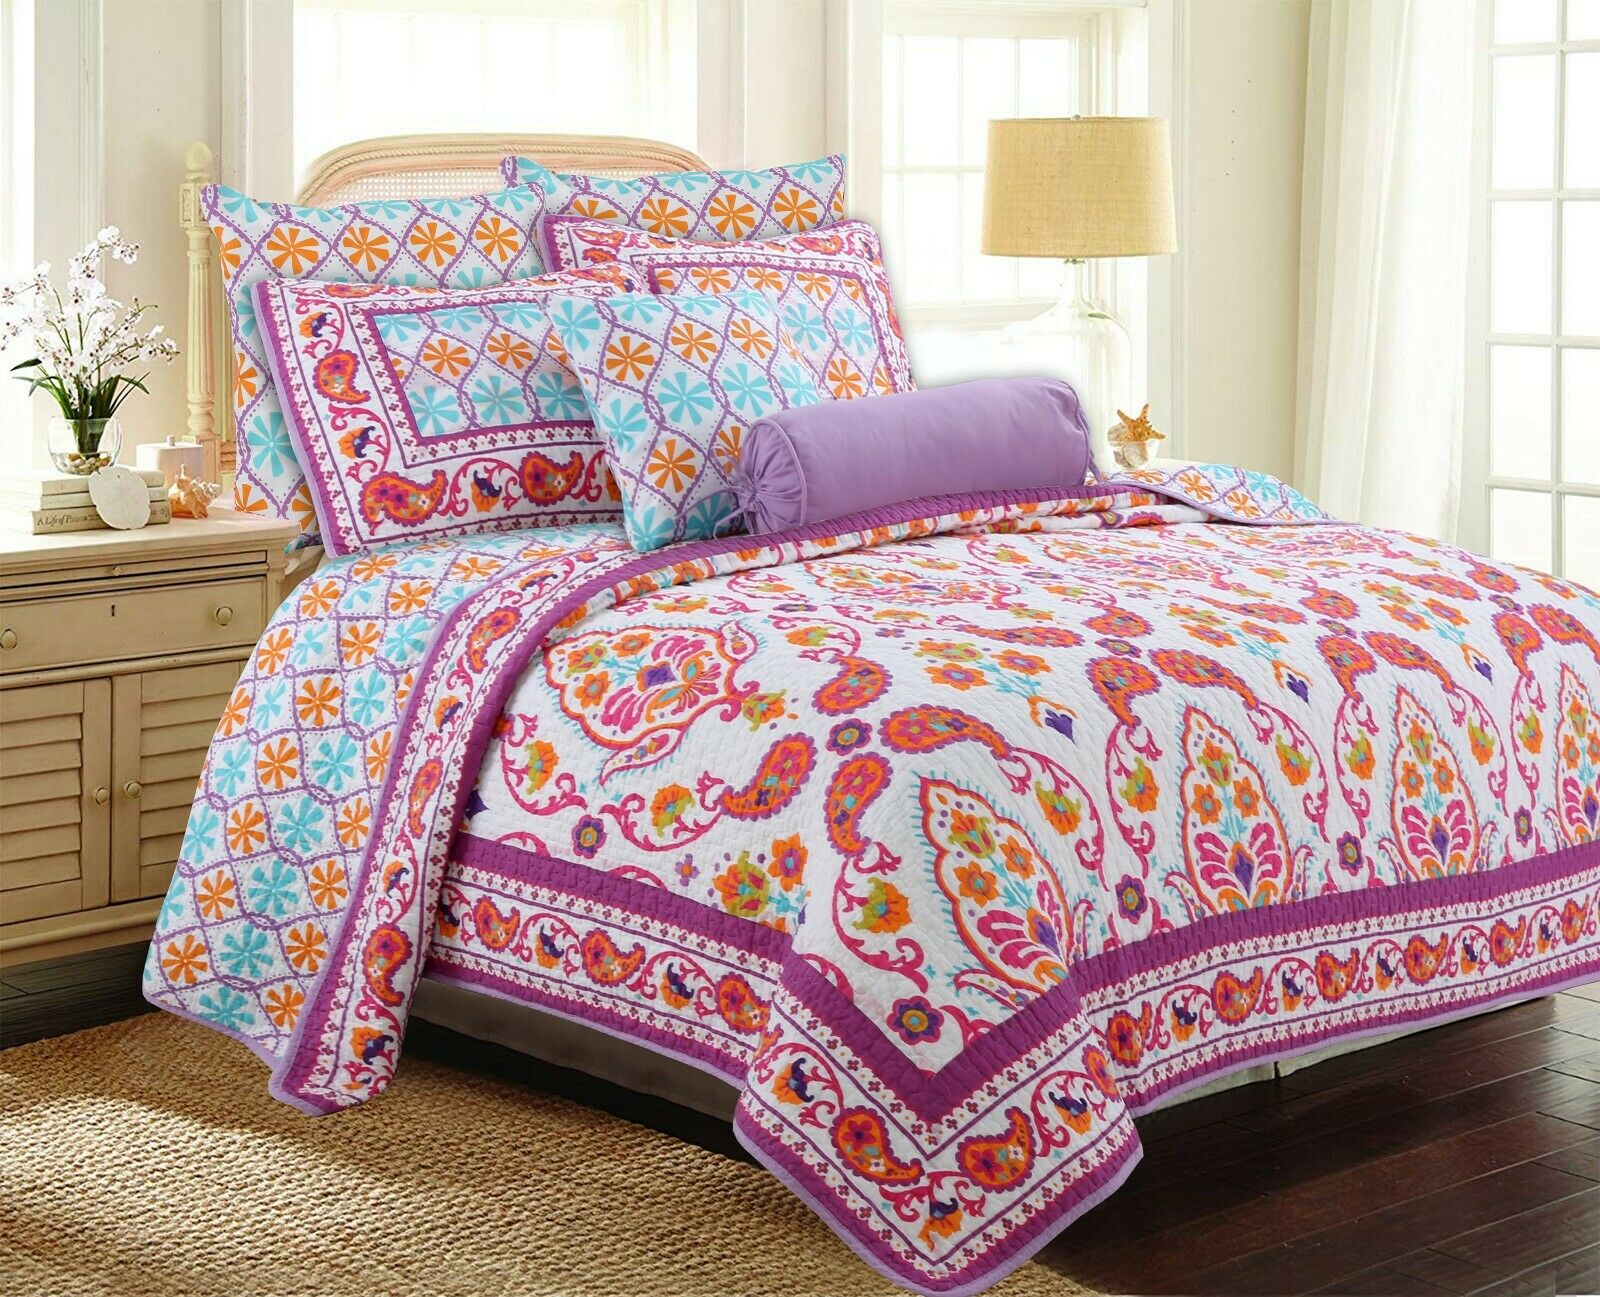 Goldfino Paisley lila 100%Cotton 3-Piece Queen Quilt Set Bedspread Coverlet